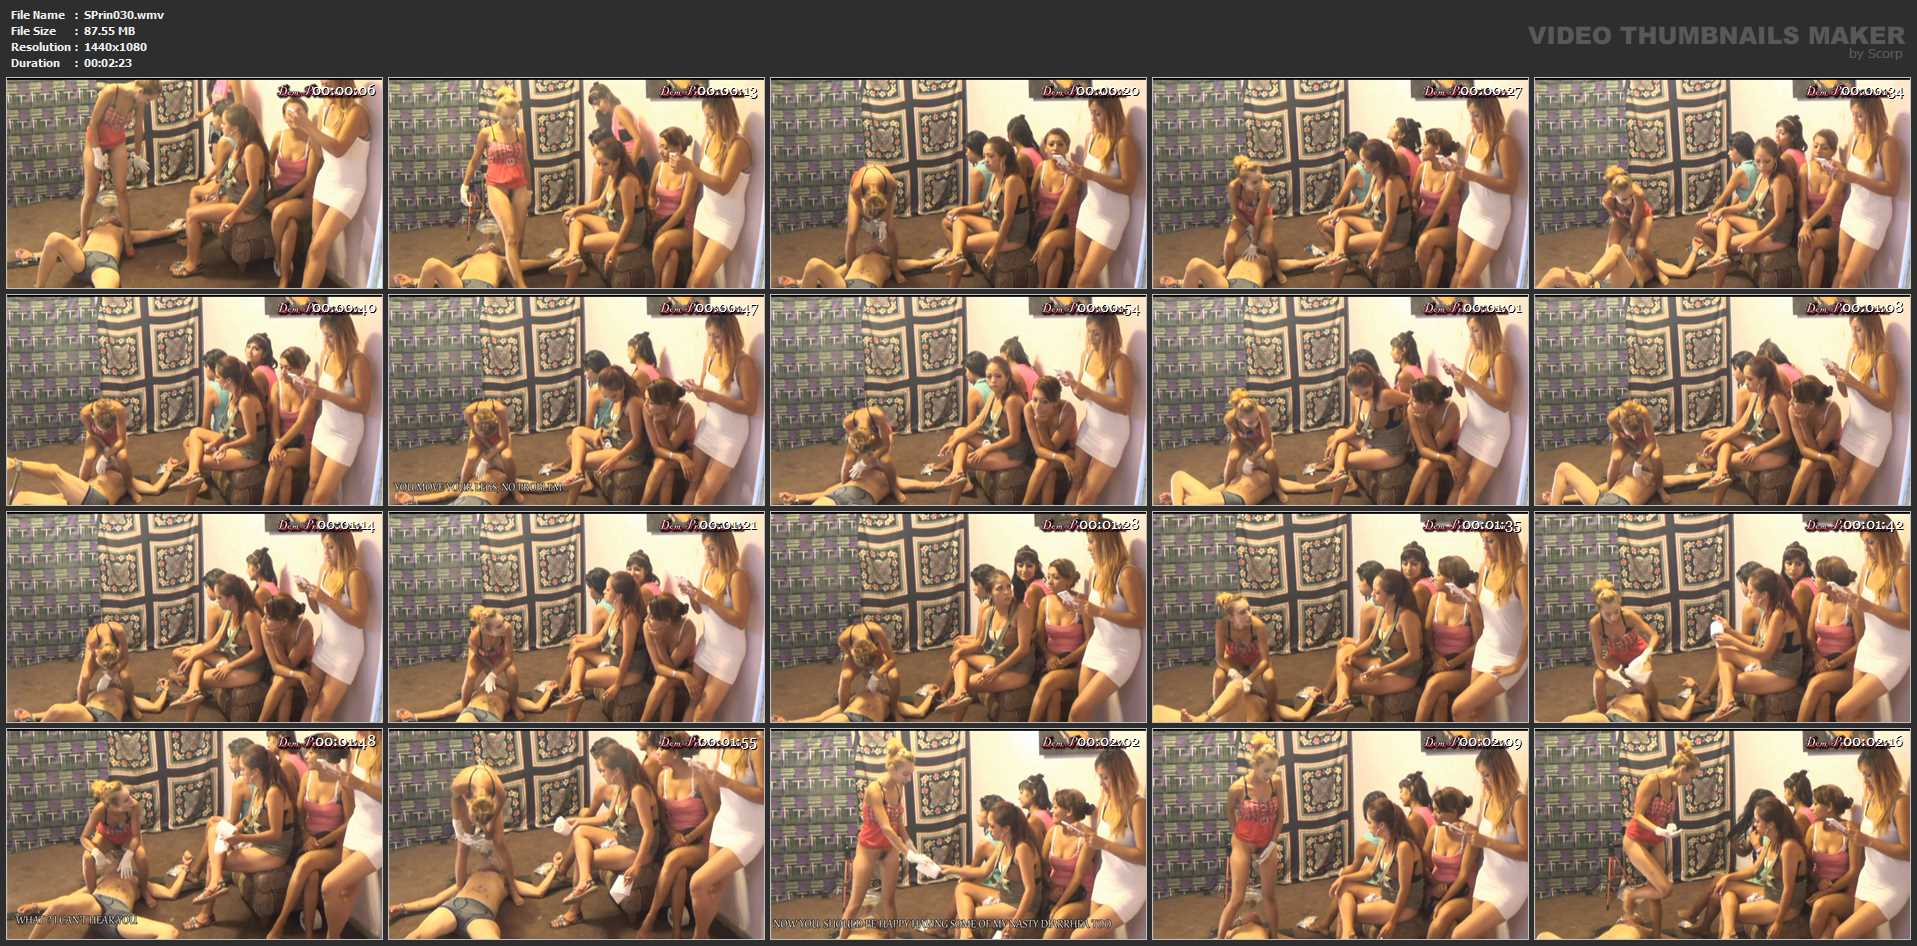 [SCAT-PRINCESS] Face's Toilet Attachment Kit turns Dramatic during Filming II Part 6 Inka [FULL HD][1080p][WMV]